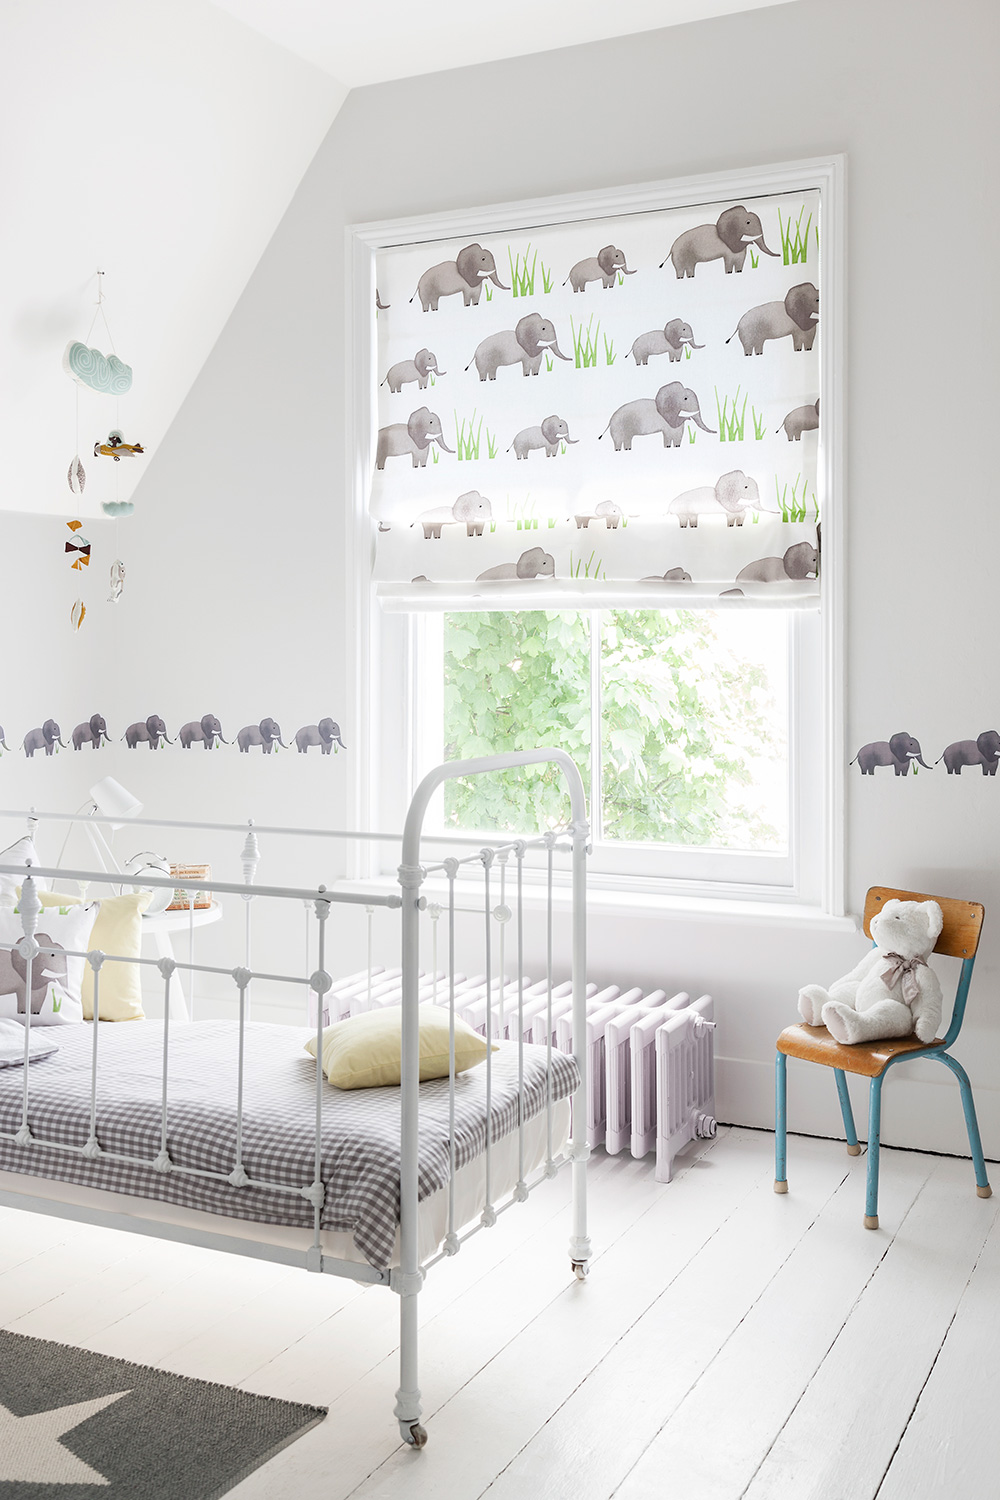 Creative window dressings - Bring fun and colour into your little one's room by adding some inspired blind solutions to the windows. This Elephant Carousel blind from Curtains.com is just the thing to stimulate their senses; with its soft, delicate design and tones, it will let plenty of light in and go perfectly with clean, fresh walls, cultivating an airy sense of space. For more inspiration and to browse all of their available options, visit www.curtains.com